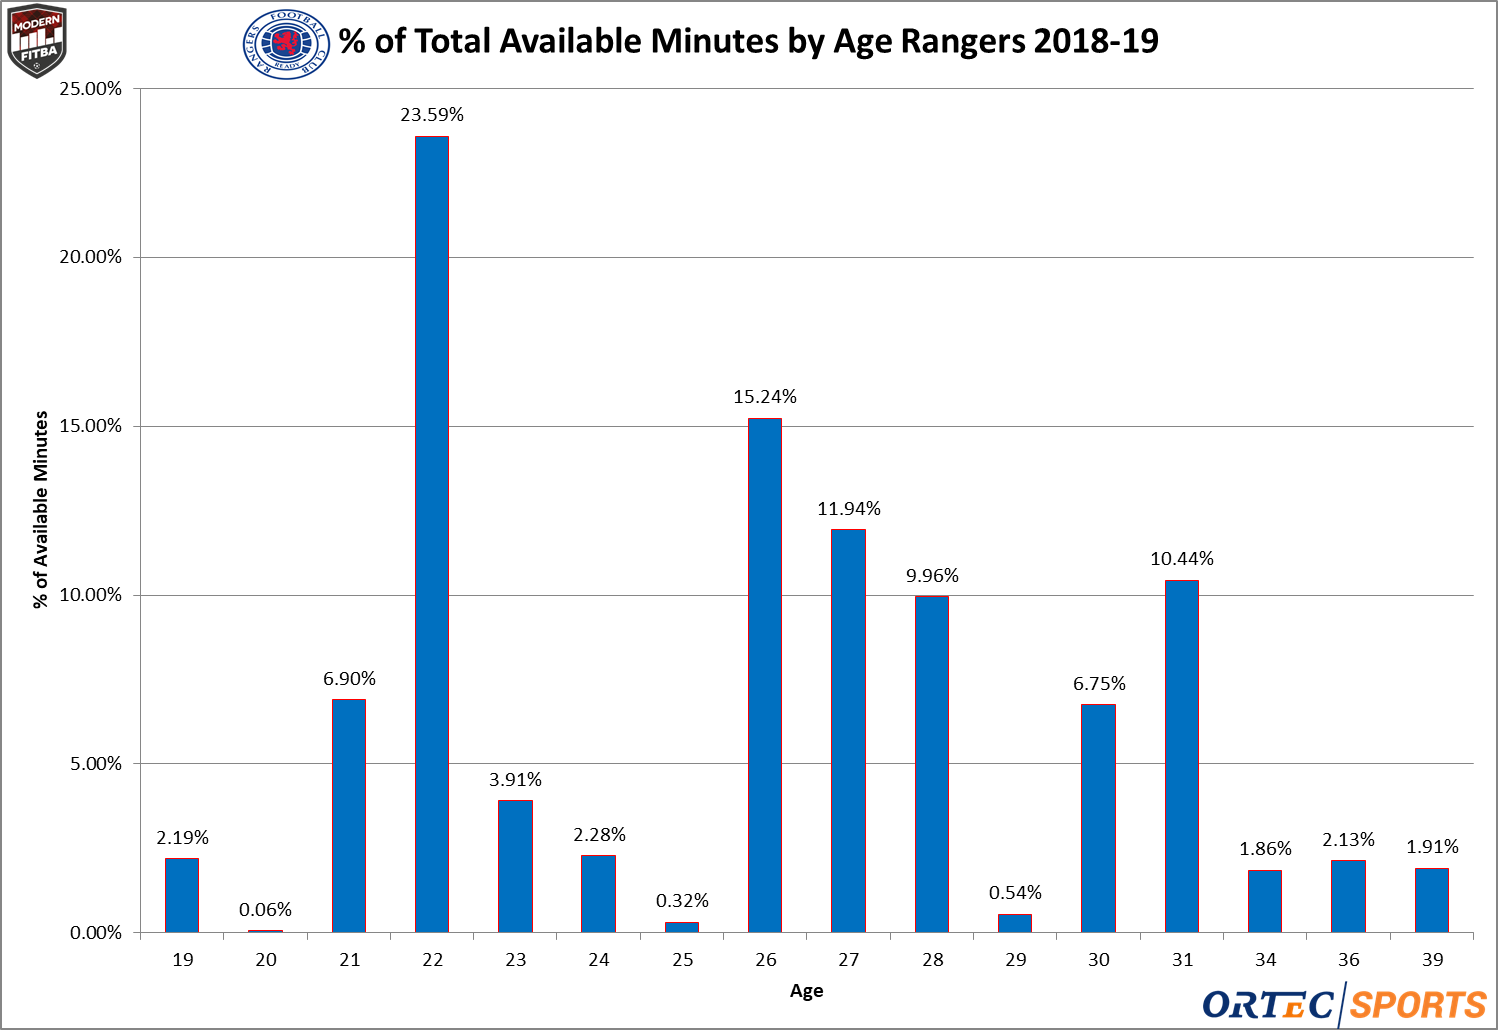 The percentage of total minutes played by age for Rangers in league play 2018-19.